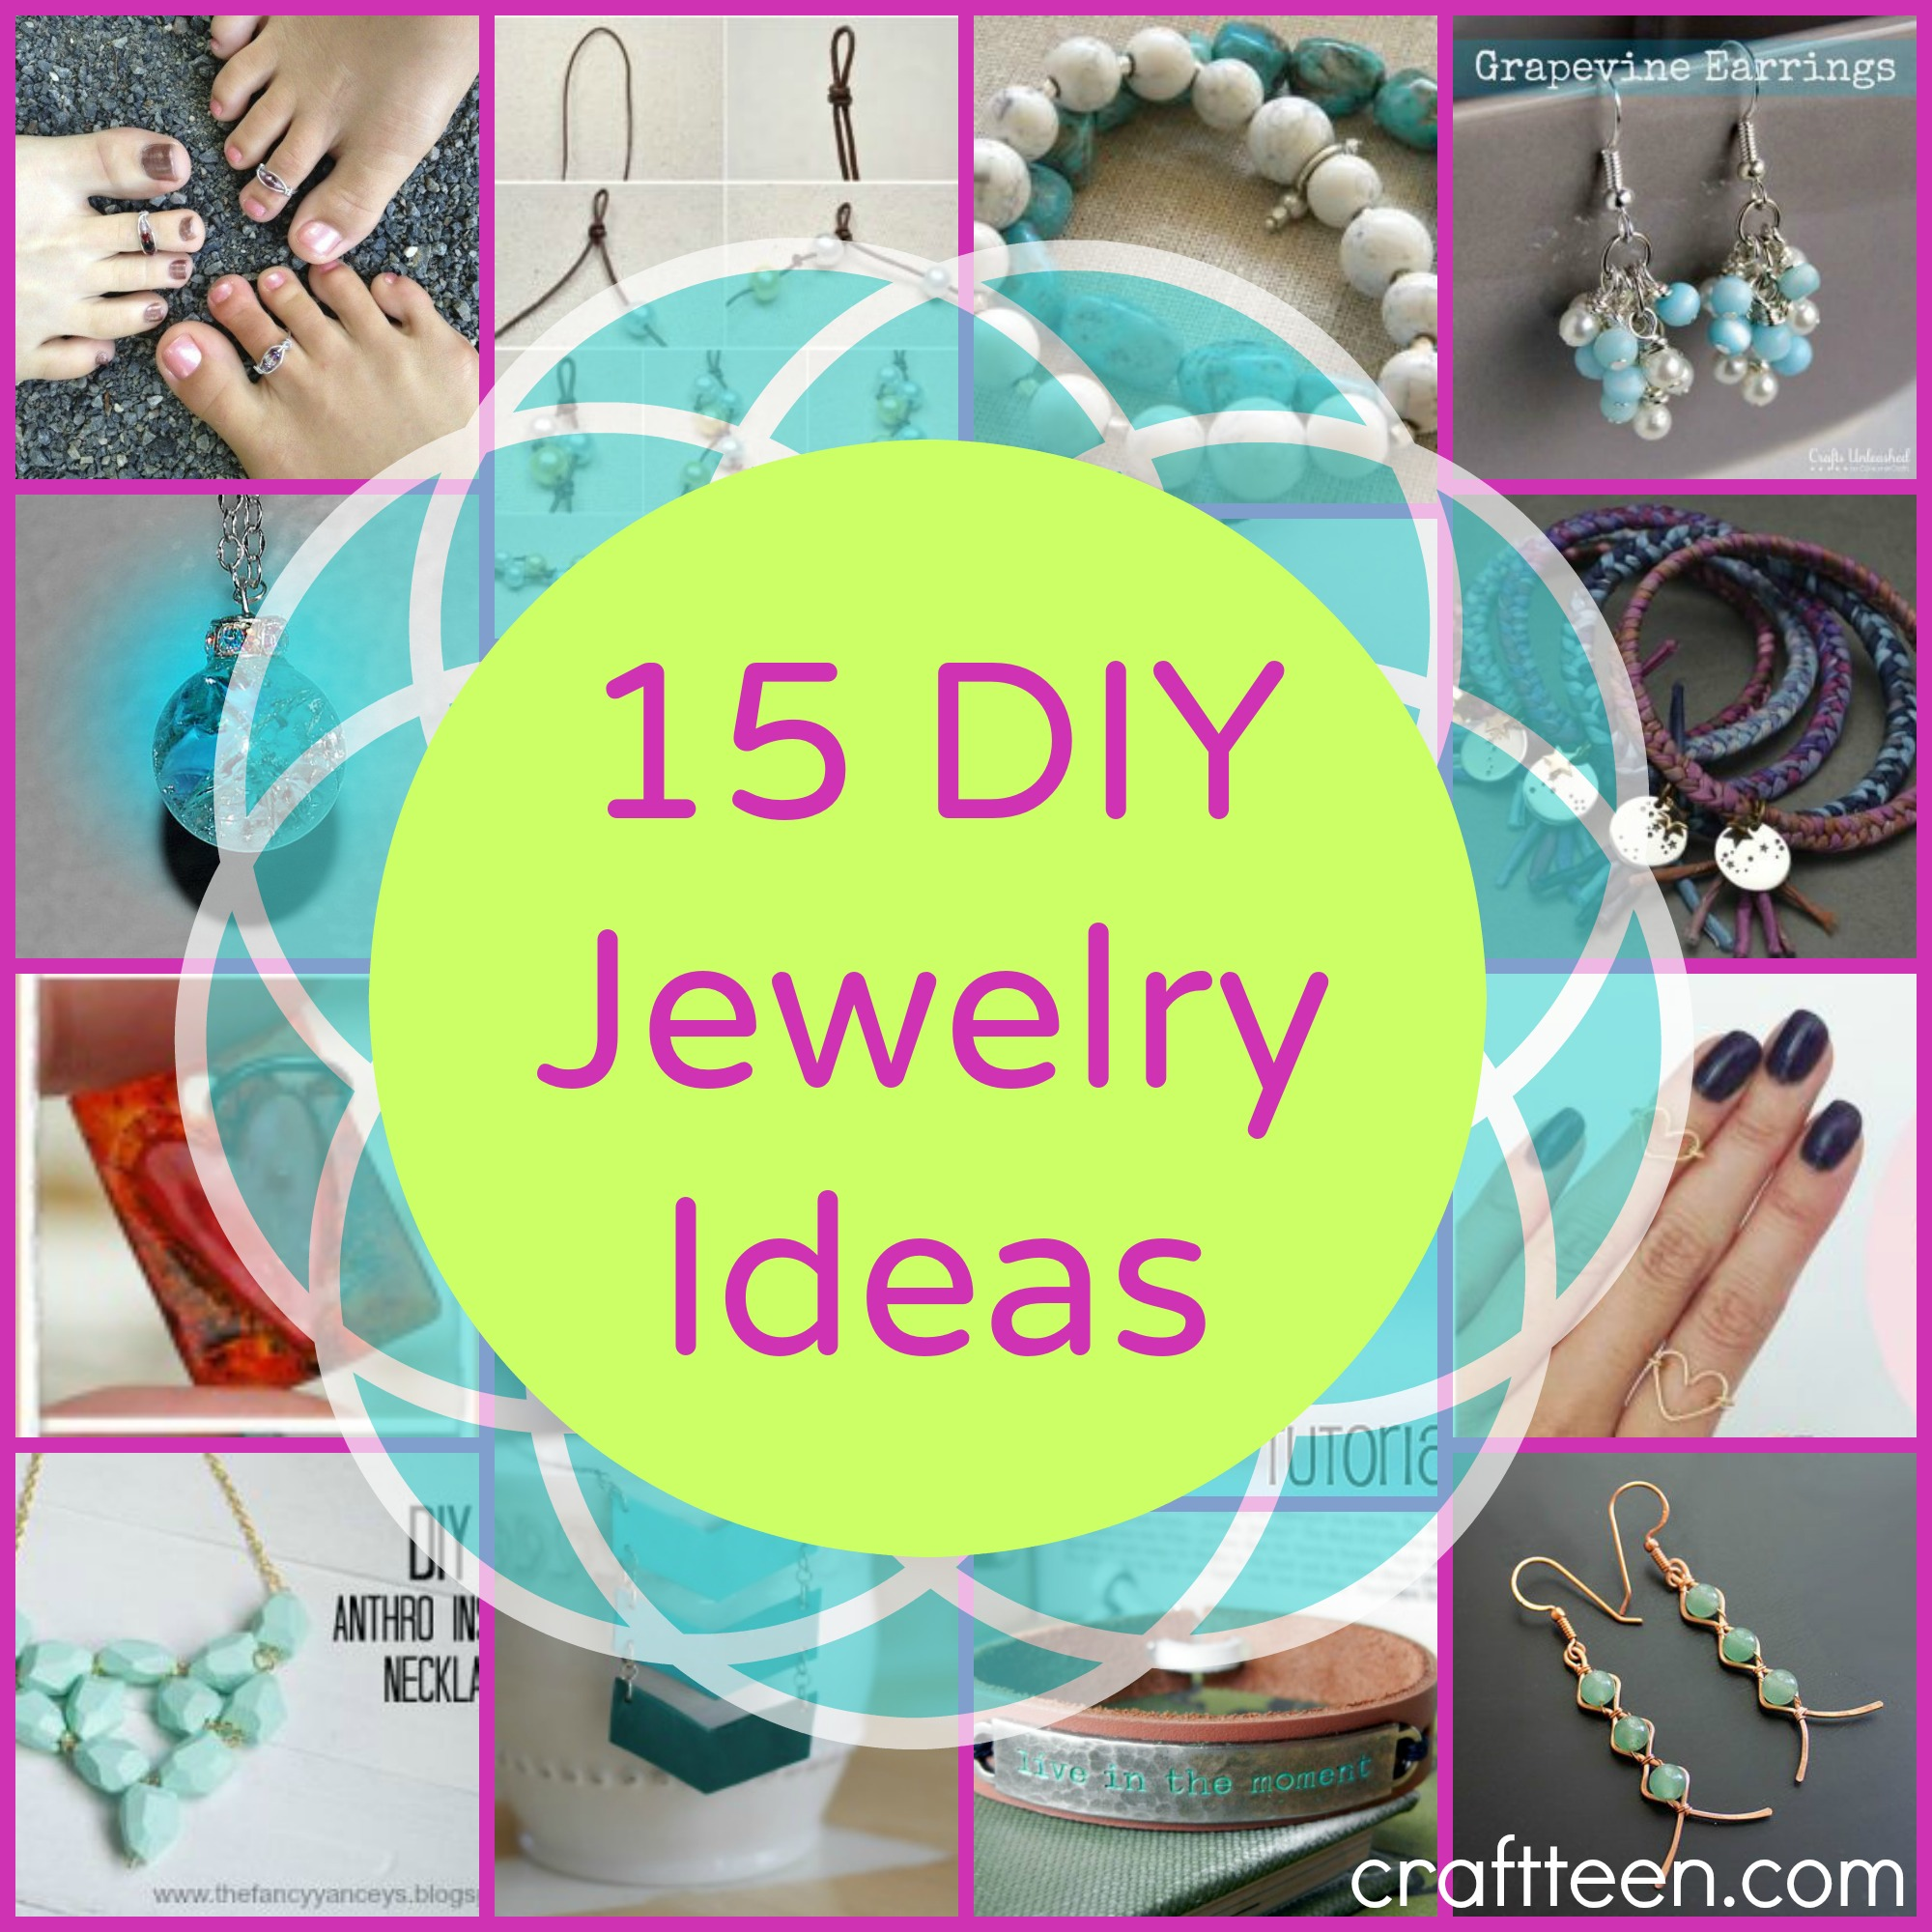 15_DIY_Jewelry_Ideas